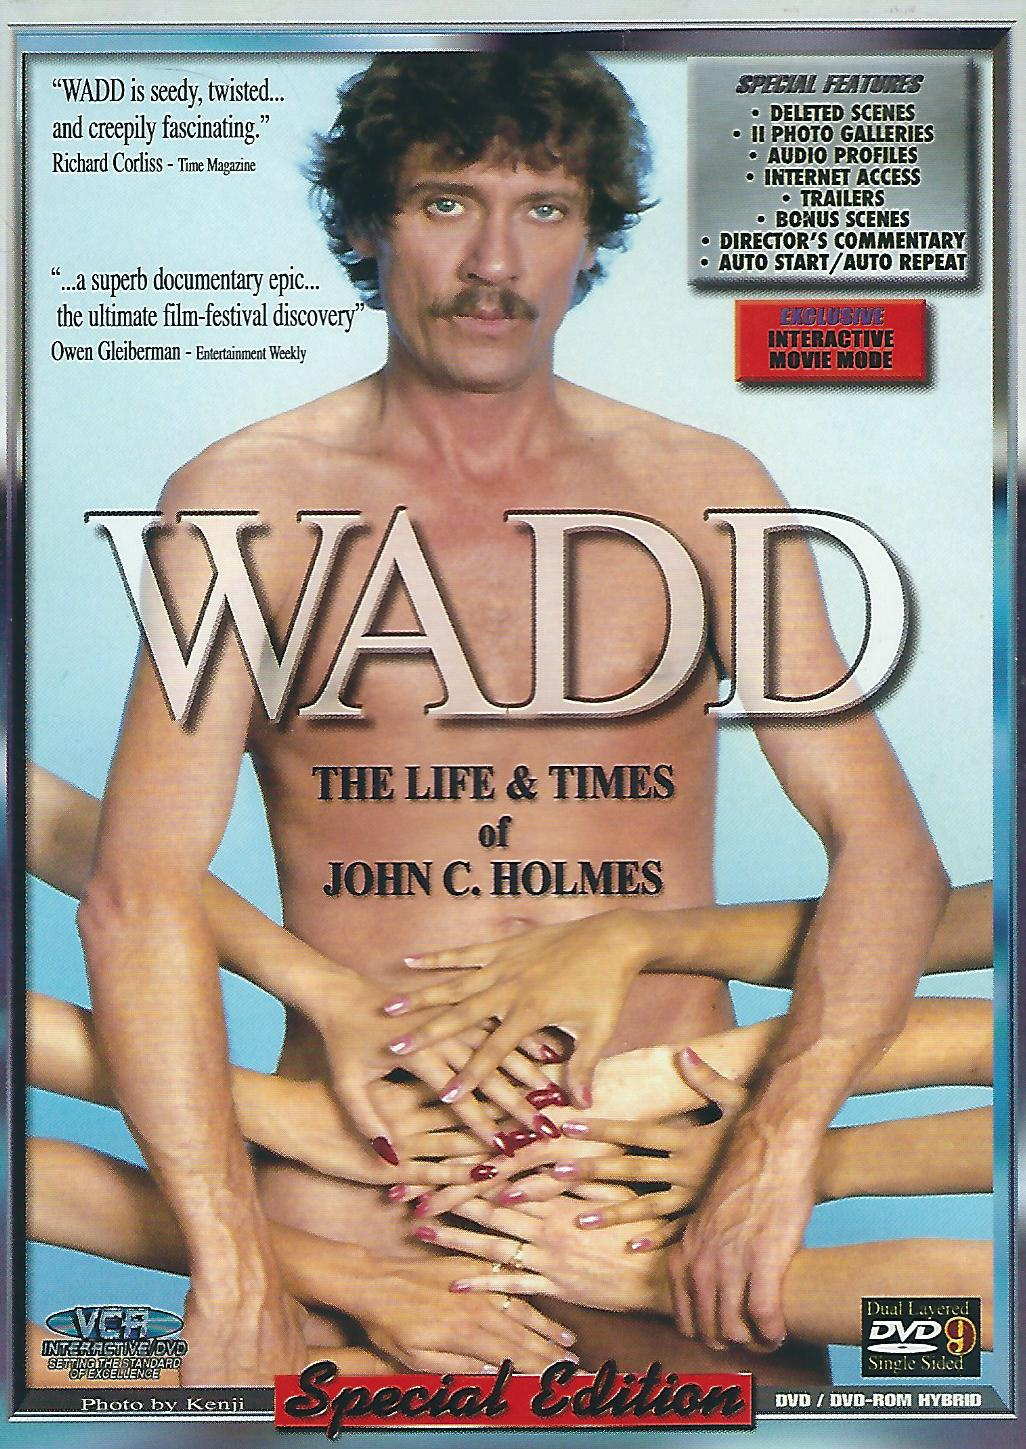 Return Of Johnny Wadd